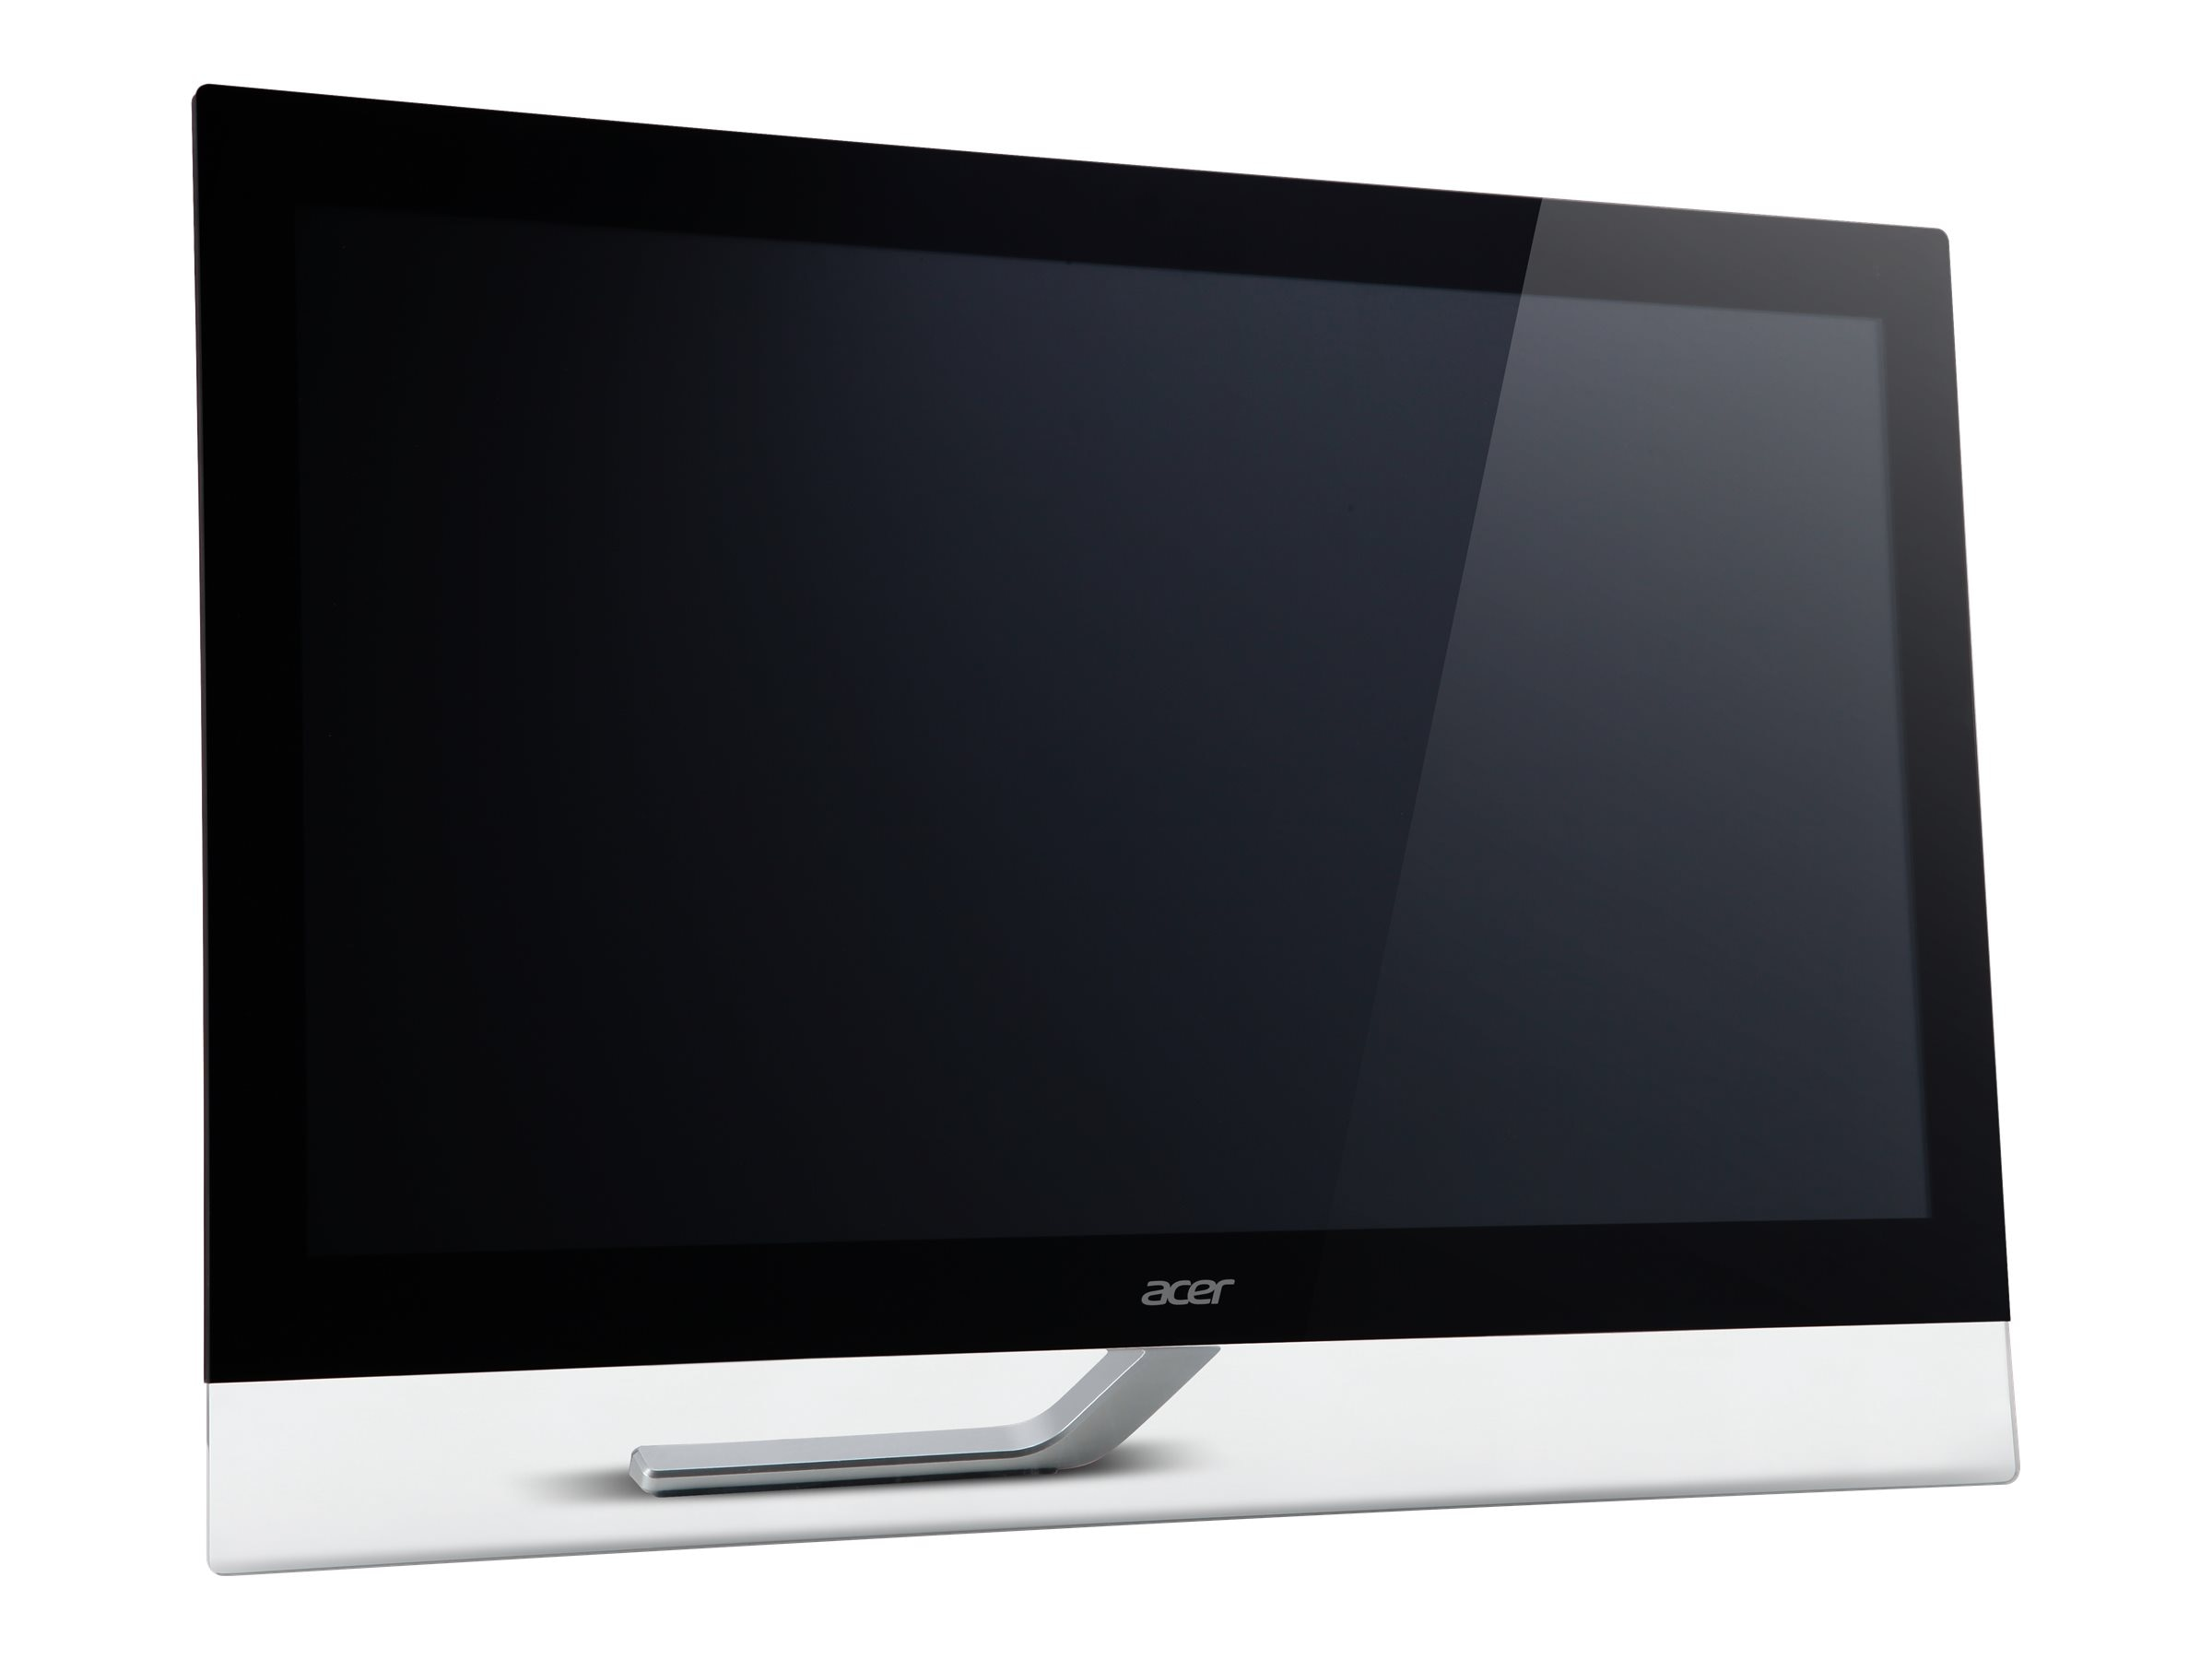 Acer 27 T272HL bmjjz Full HD Touchscreen Monitor, Black, UM.HT2AA.003